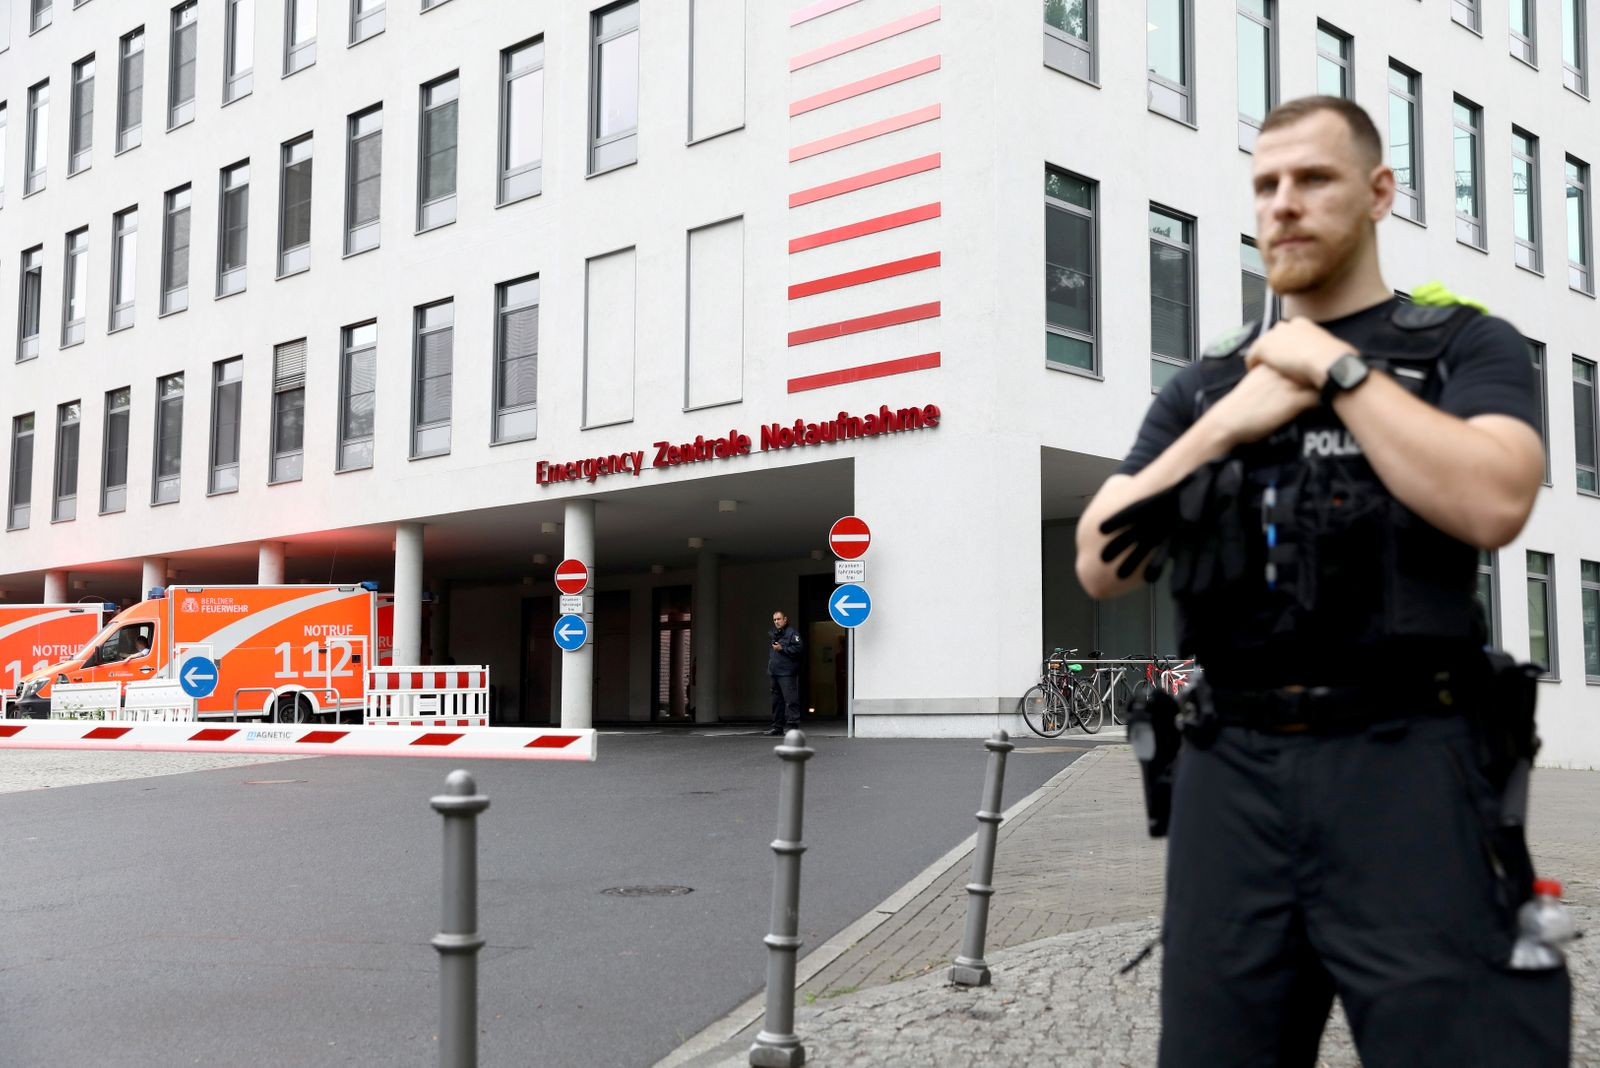 A general view shows an entrance of Charite Mitte Hospital Complex where Russian opposition leader Alexei Navalny is expected to be treated after being brought to Germany, in Berlin